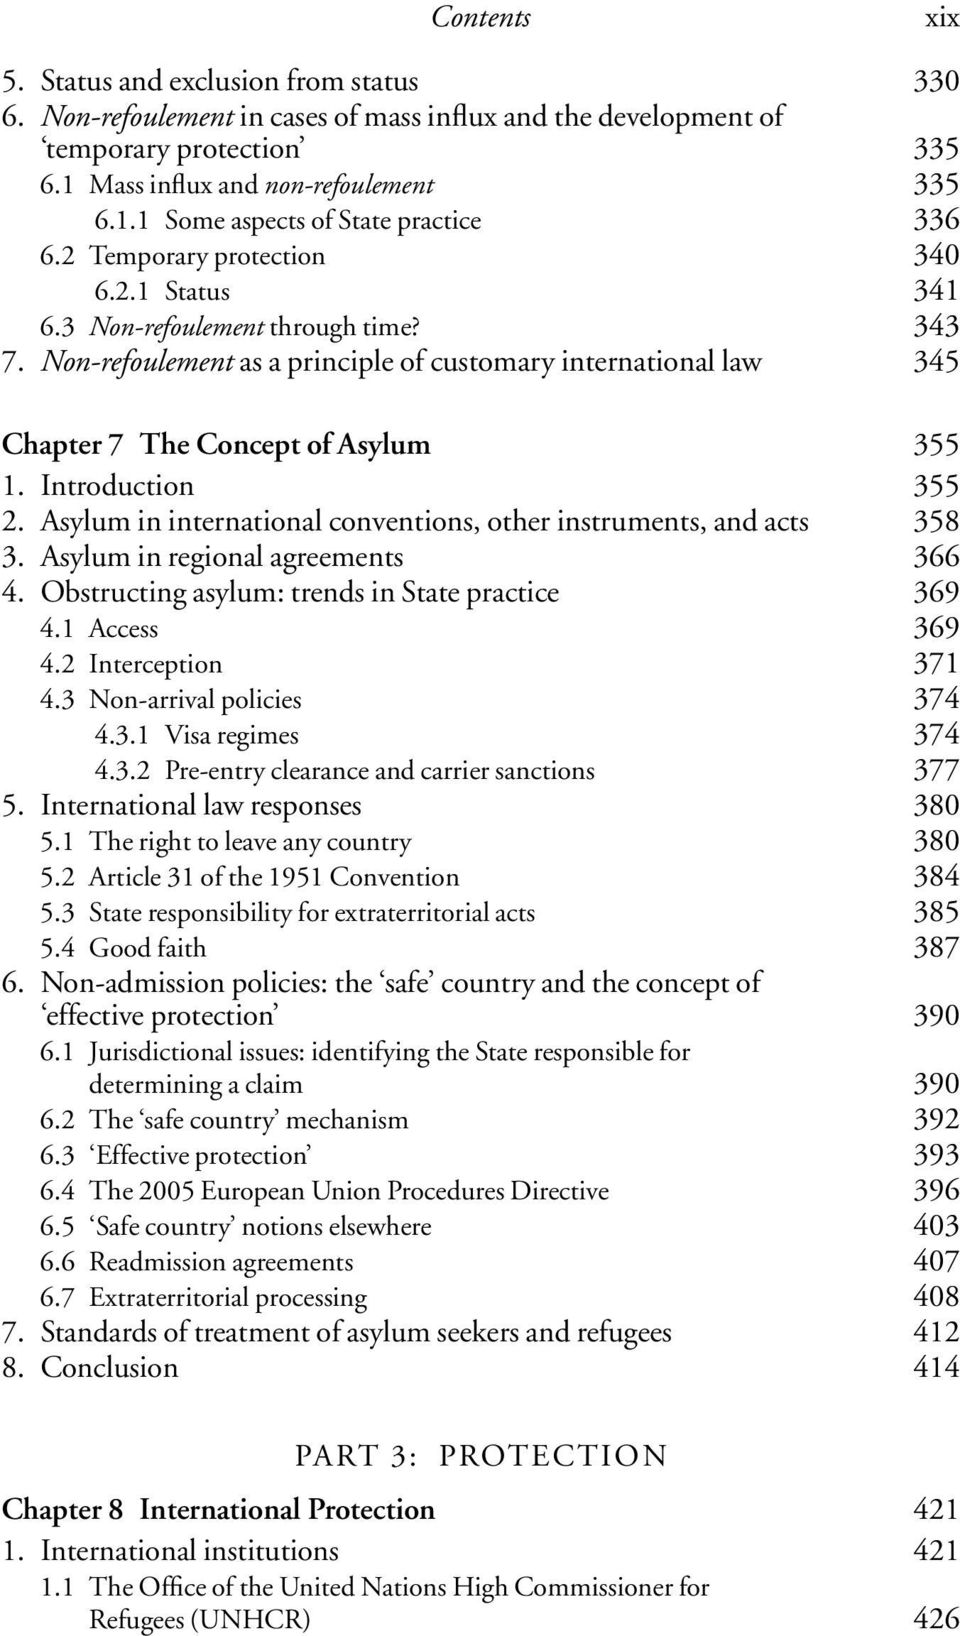 Introduction 355 2. Asylum in international conventions, other instruments, and acts 358 3. Asylum in regional agreements 366 4. Obstructing asylum: trends in State practice 369 4.1 Access 369 4.